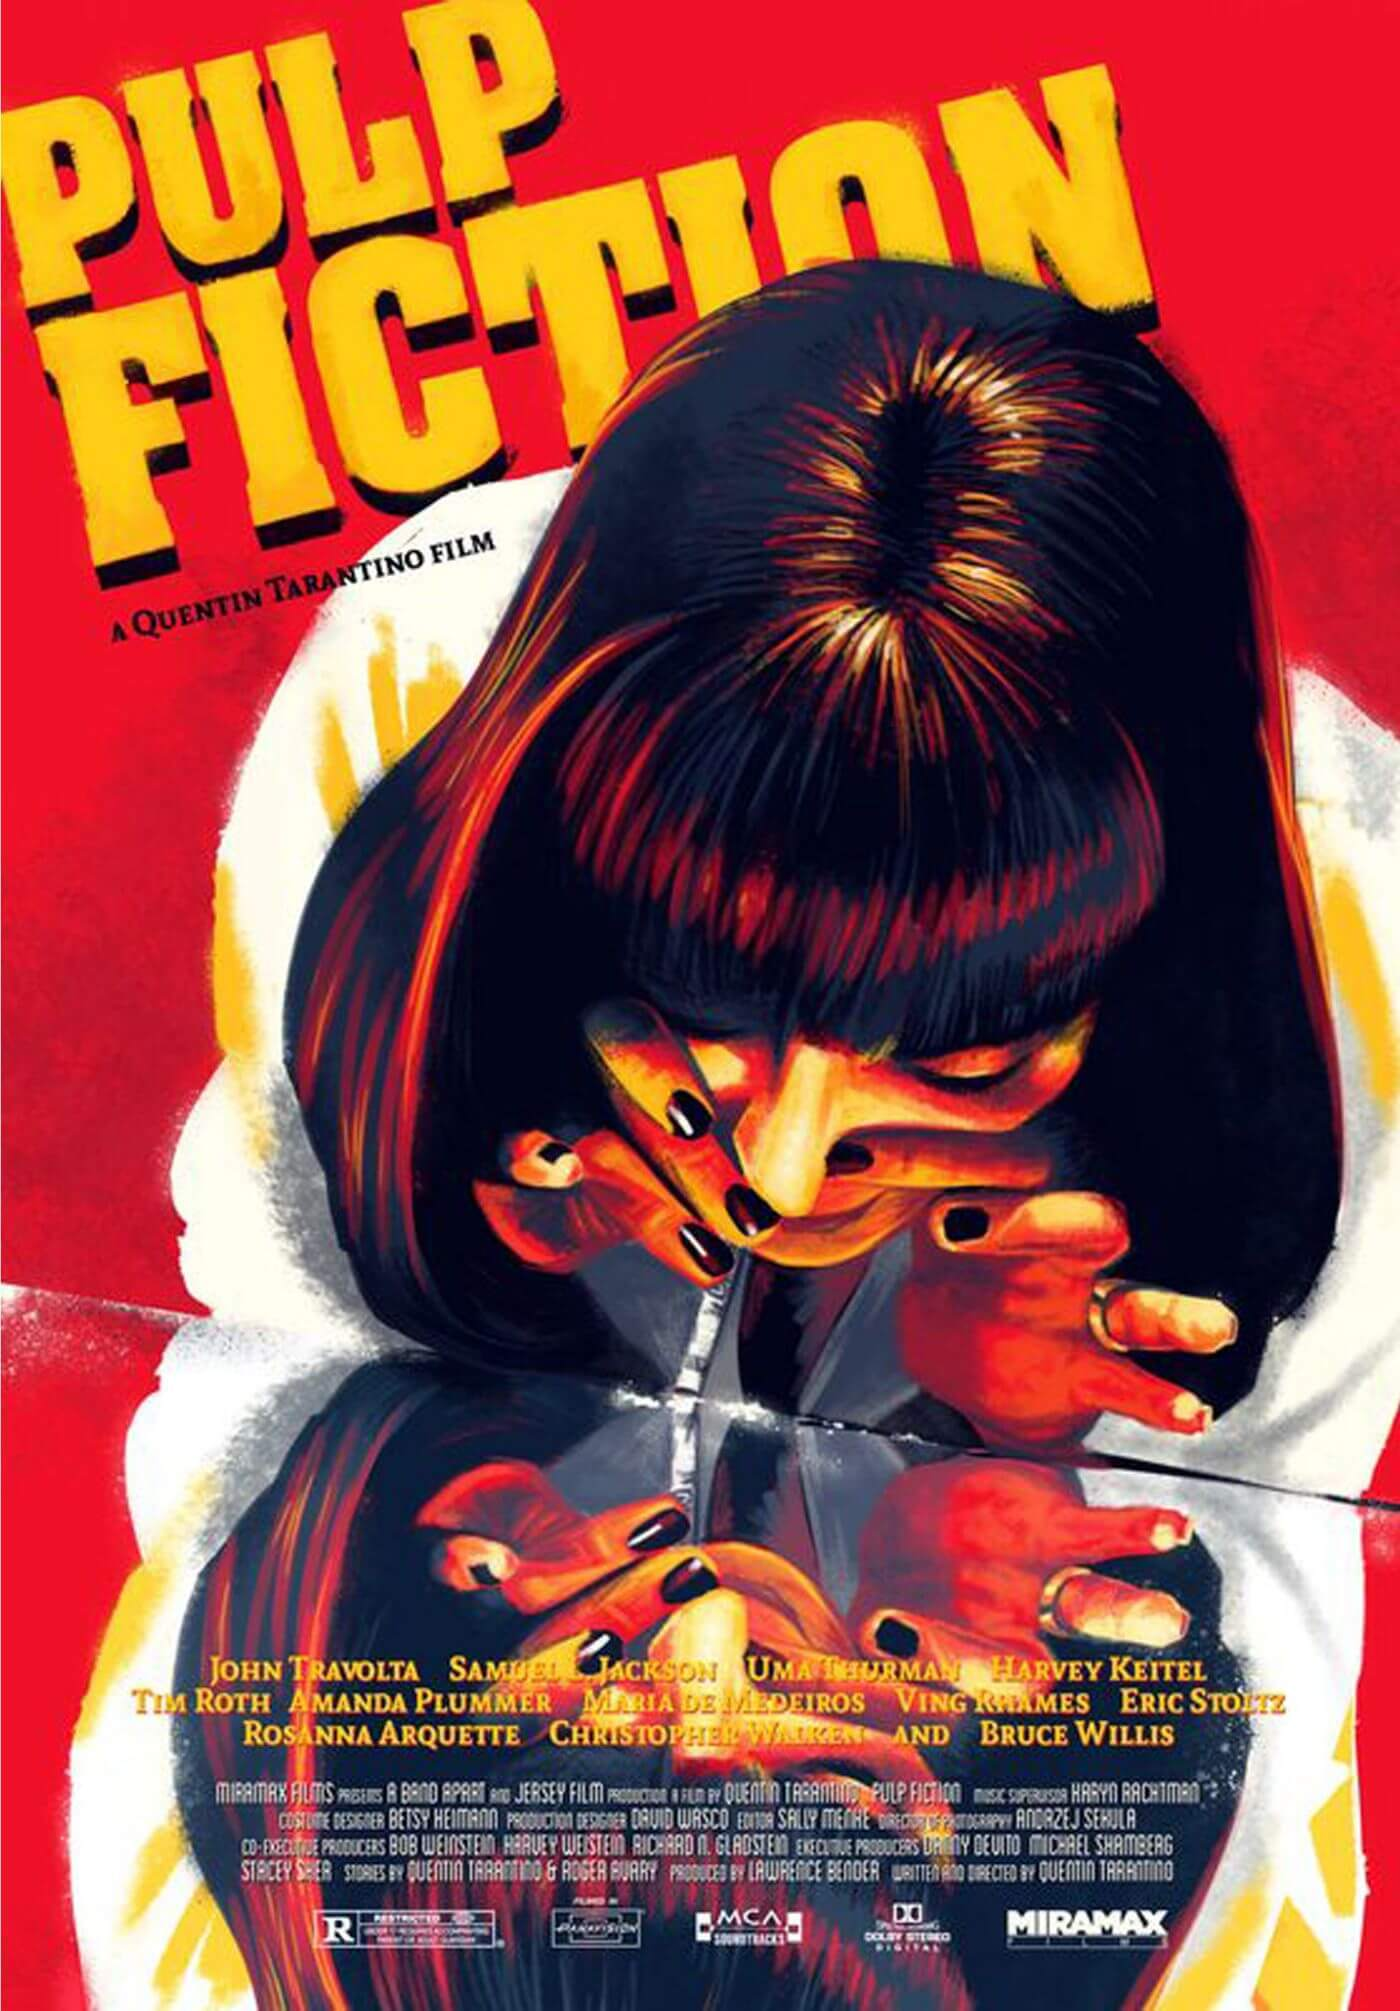 Pulp Fiction Uma Thurman As Mia Wallace Quentin Tarantino Hollywood Movie Poster Collection Canvas Prints By Joel Jerry Buy Posters Frames Canvas Digital Art Prints Small